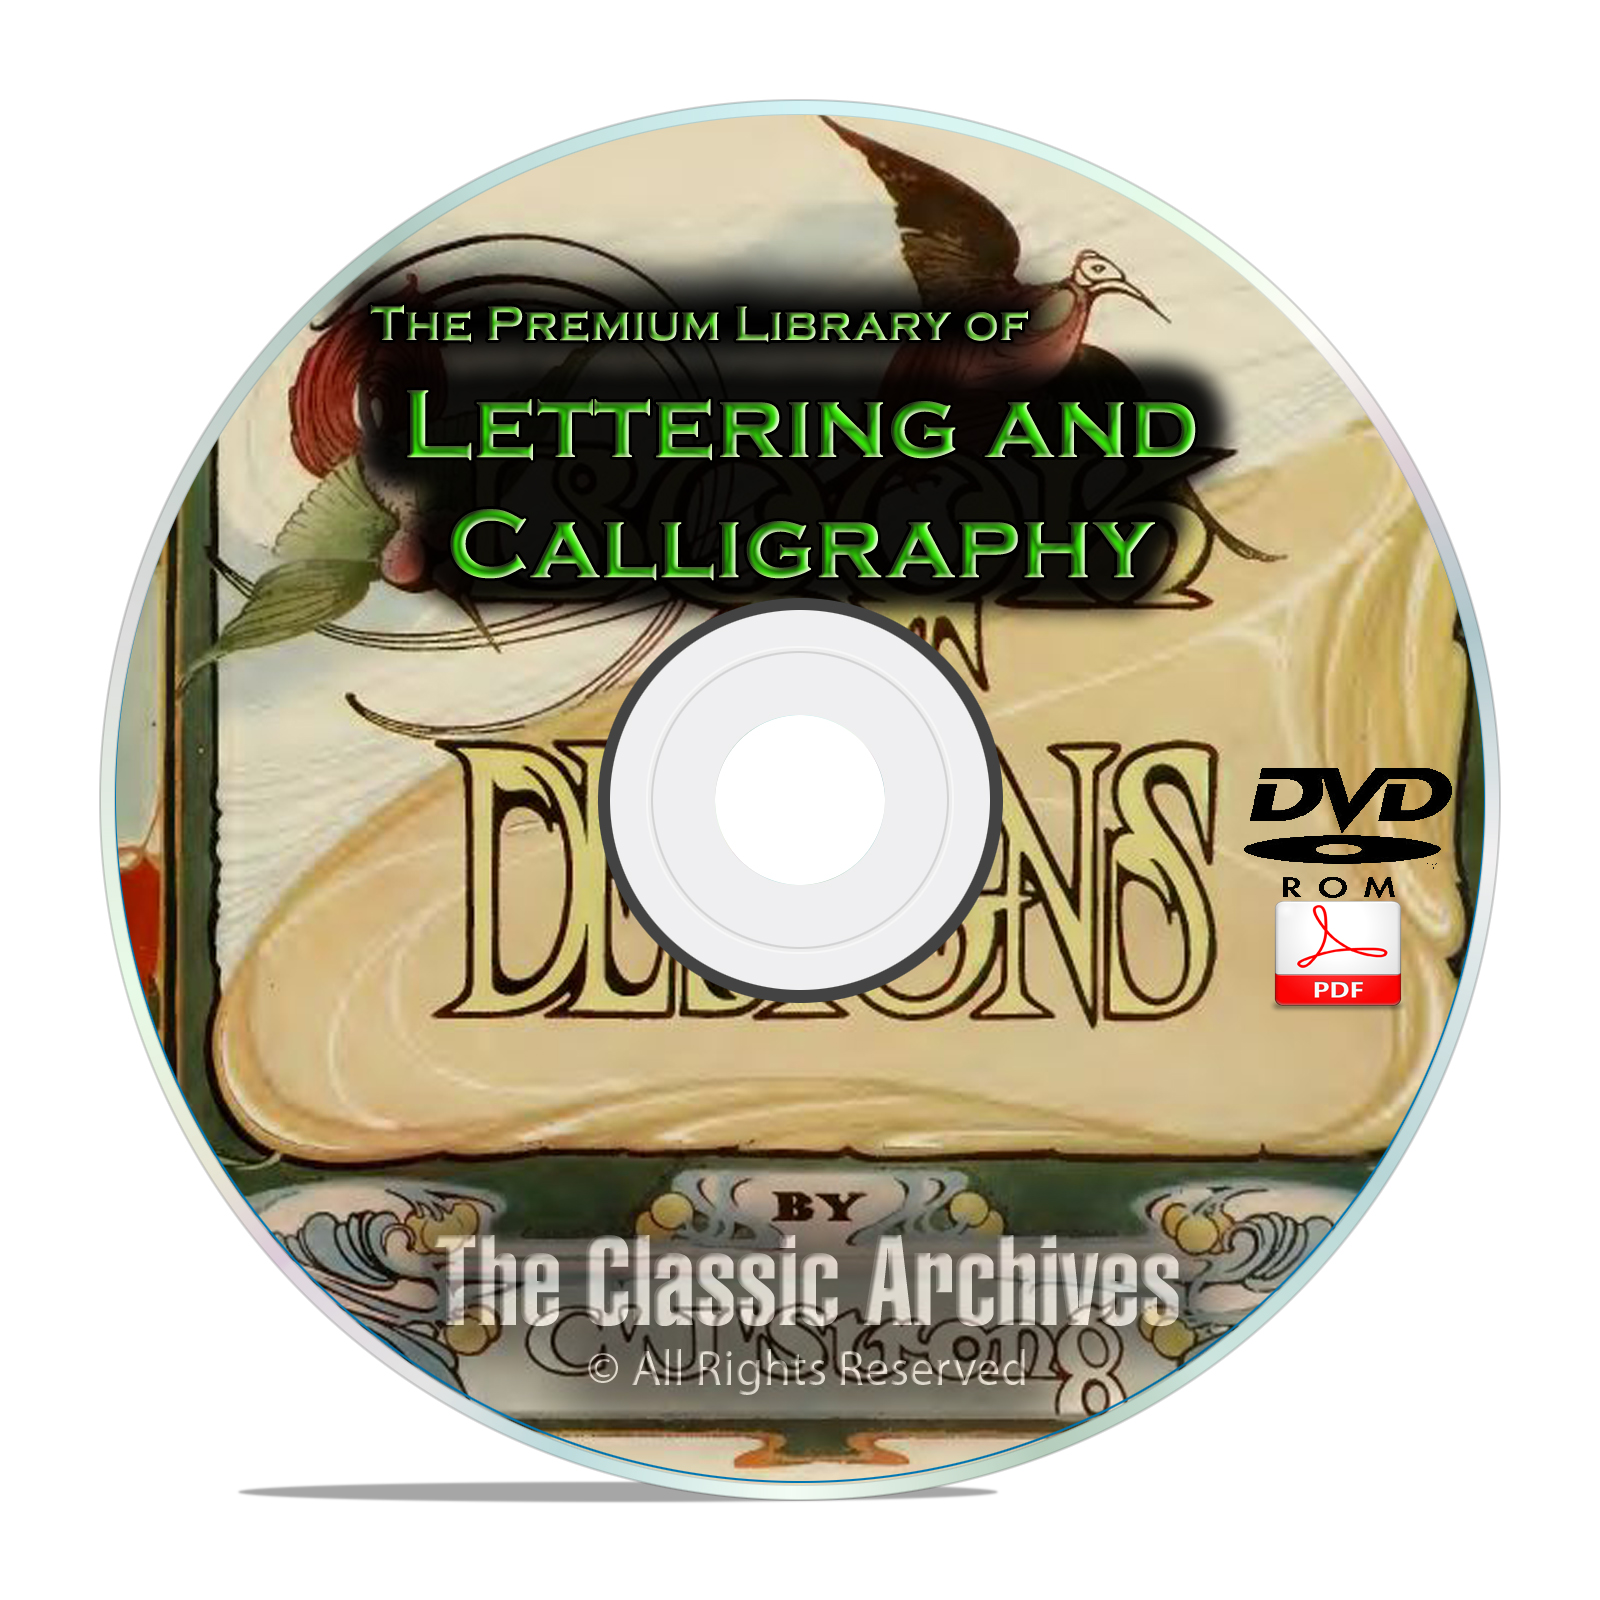 Lettering Calligraphy Library, Monograms Ciphers Sign Writing 164 Books DVD